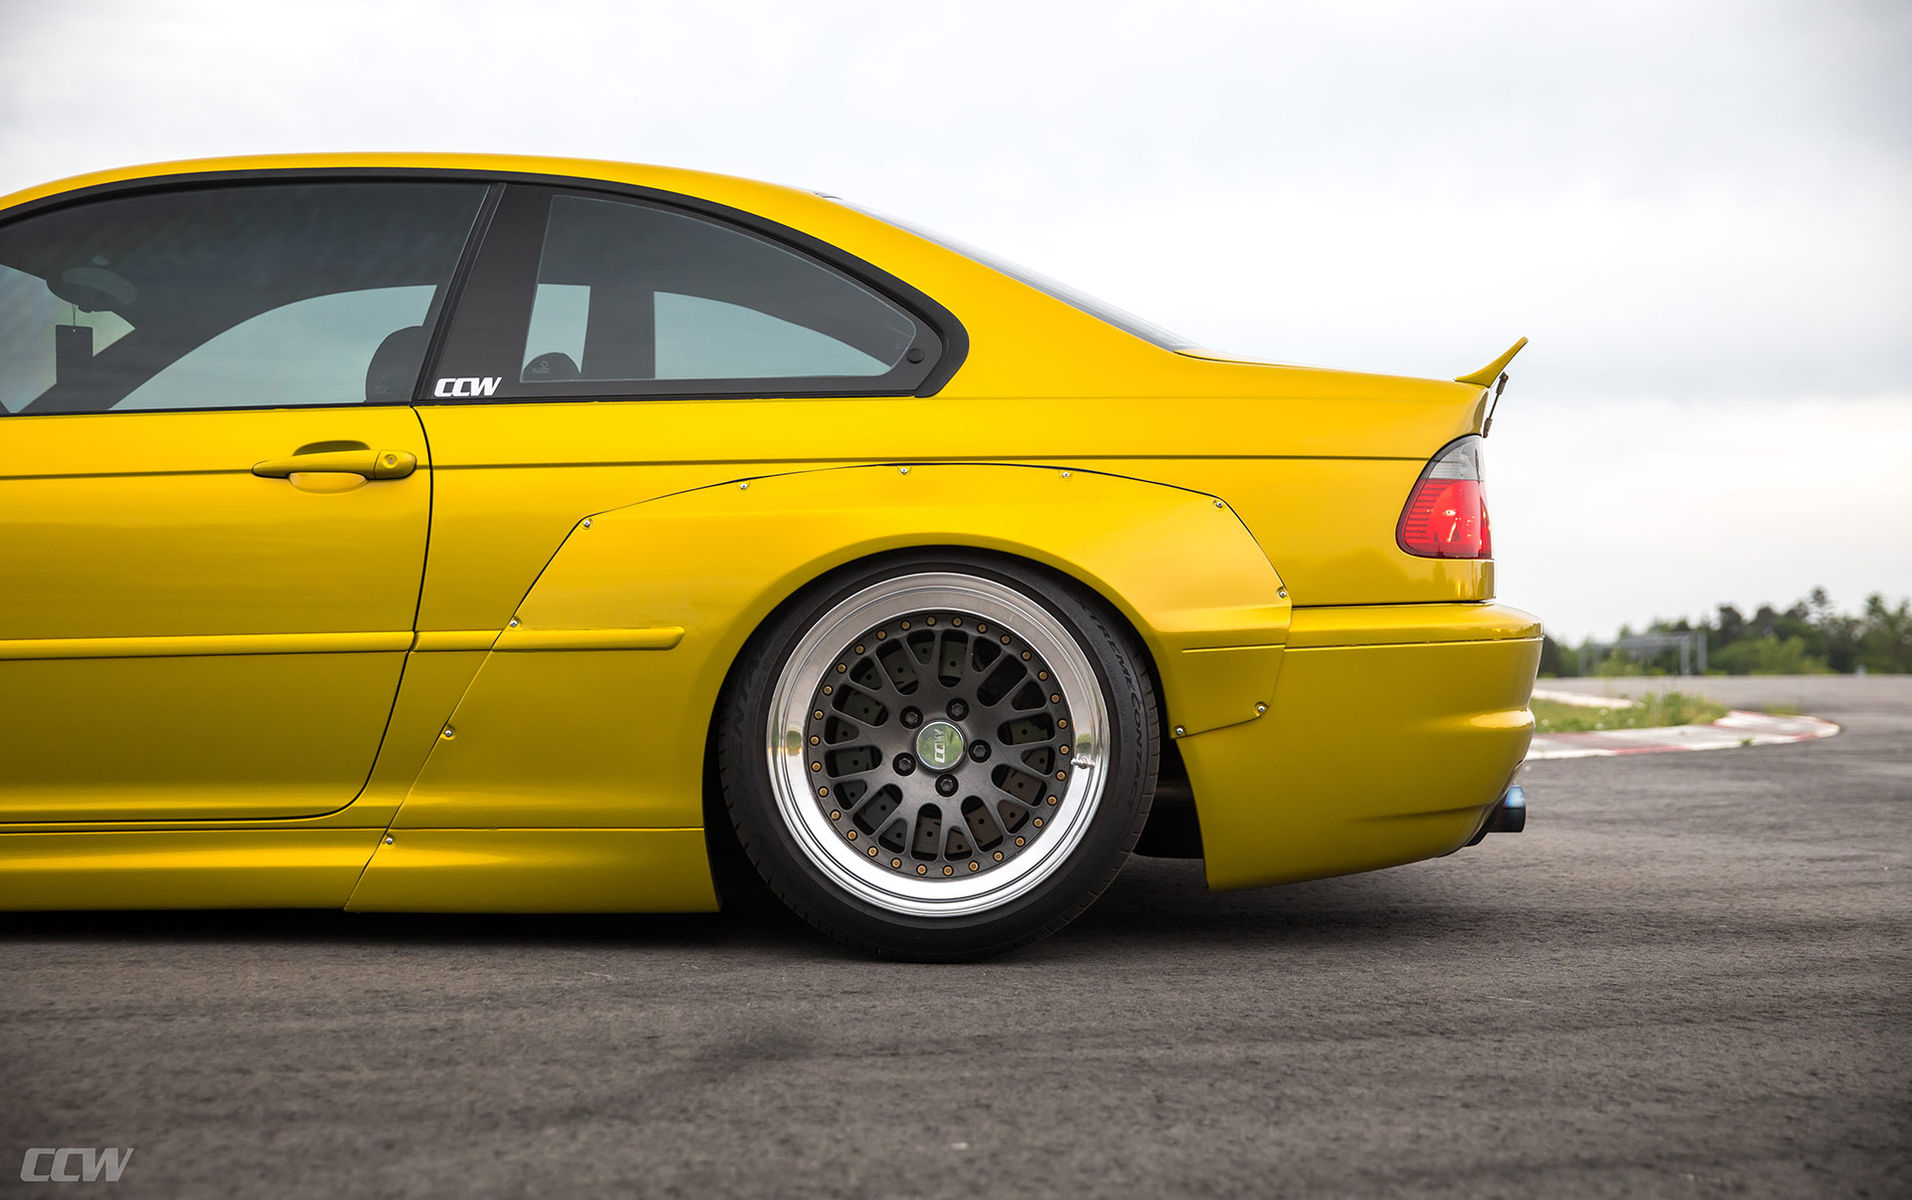 BMW M3 | Phoenix Yellow Pandem Widebody E46 M3 - CCW Classic 3 Piece Wheels